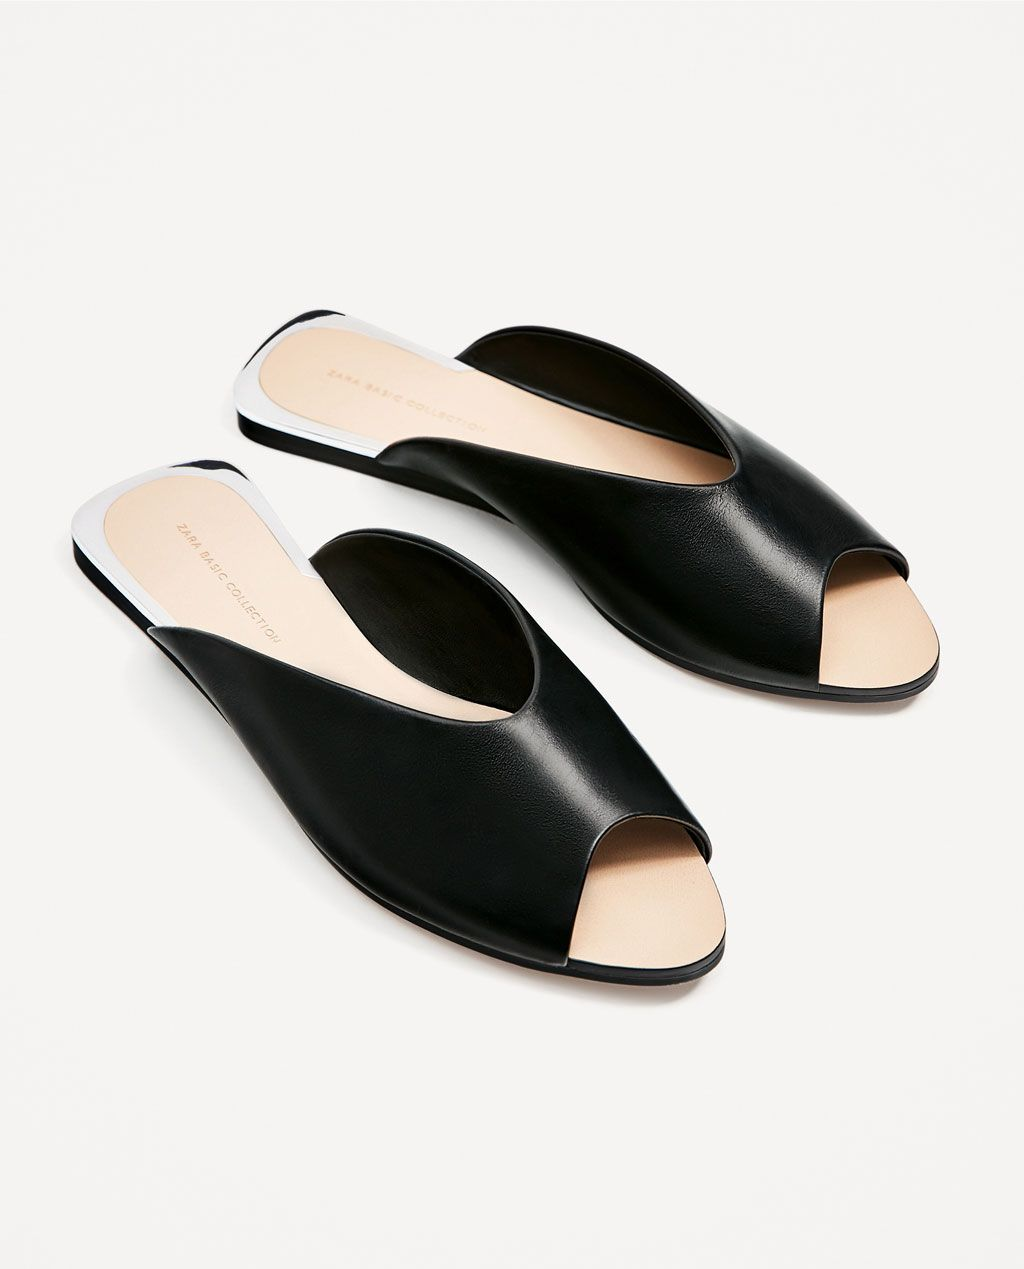 6834e0140b V-CUT LEATHER SLIDES-Flat sandals-SHOES-WOMAN | ZARA United States ...